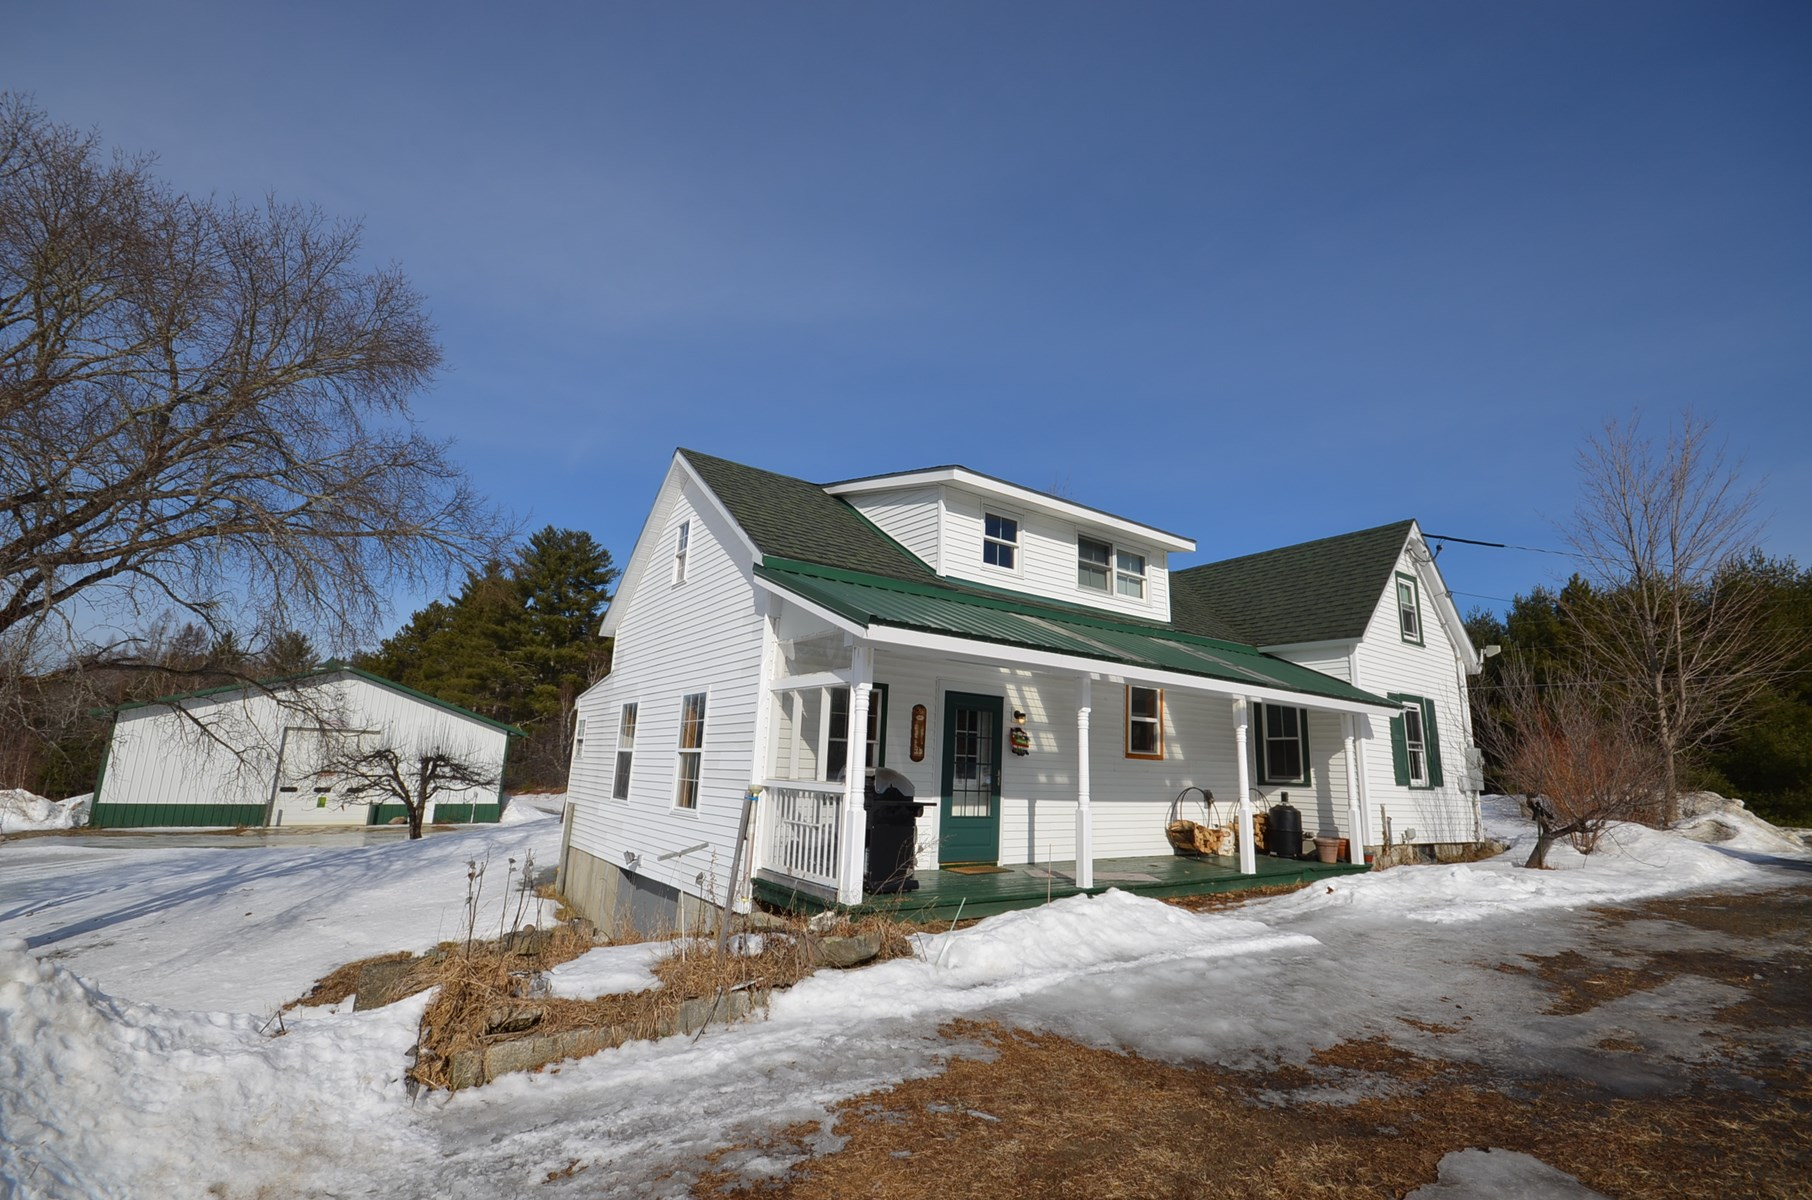 Farmhouse for sale in Passadumkeag, Maine